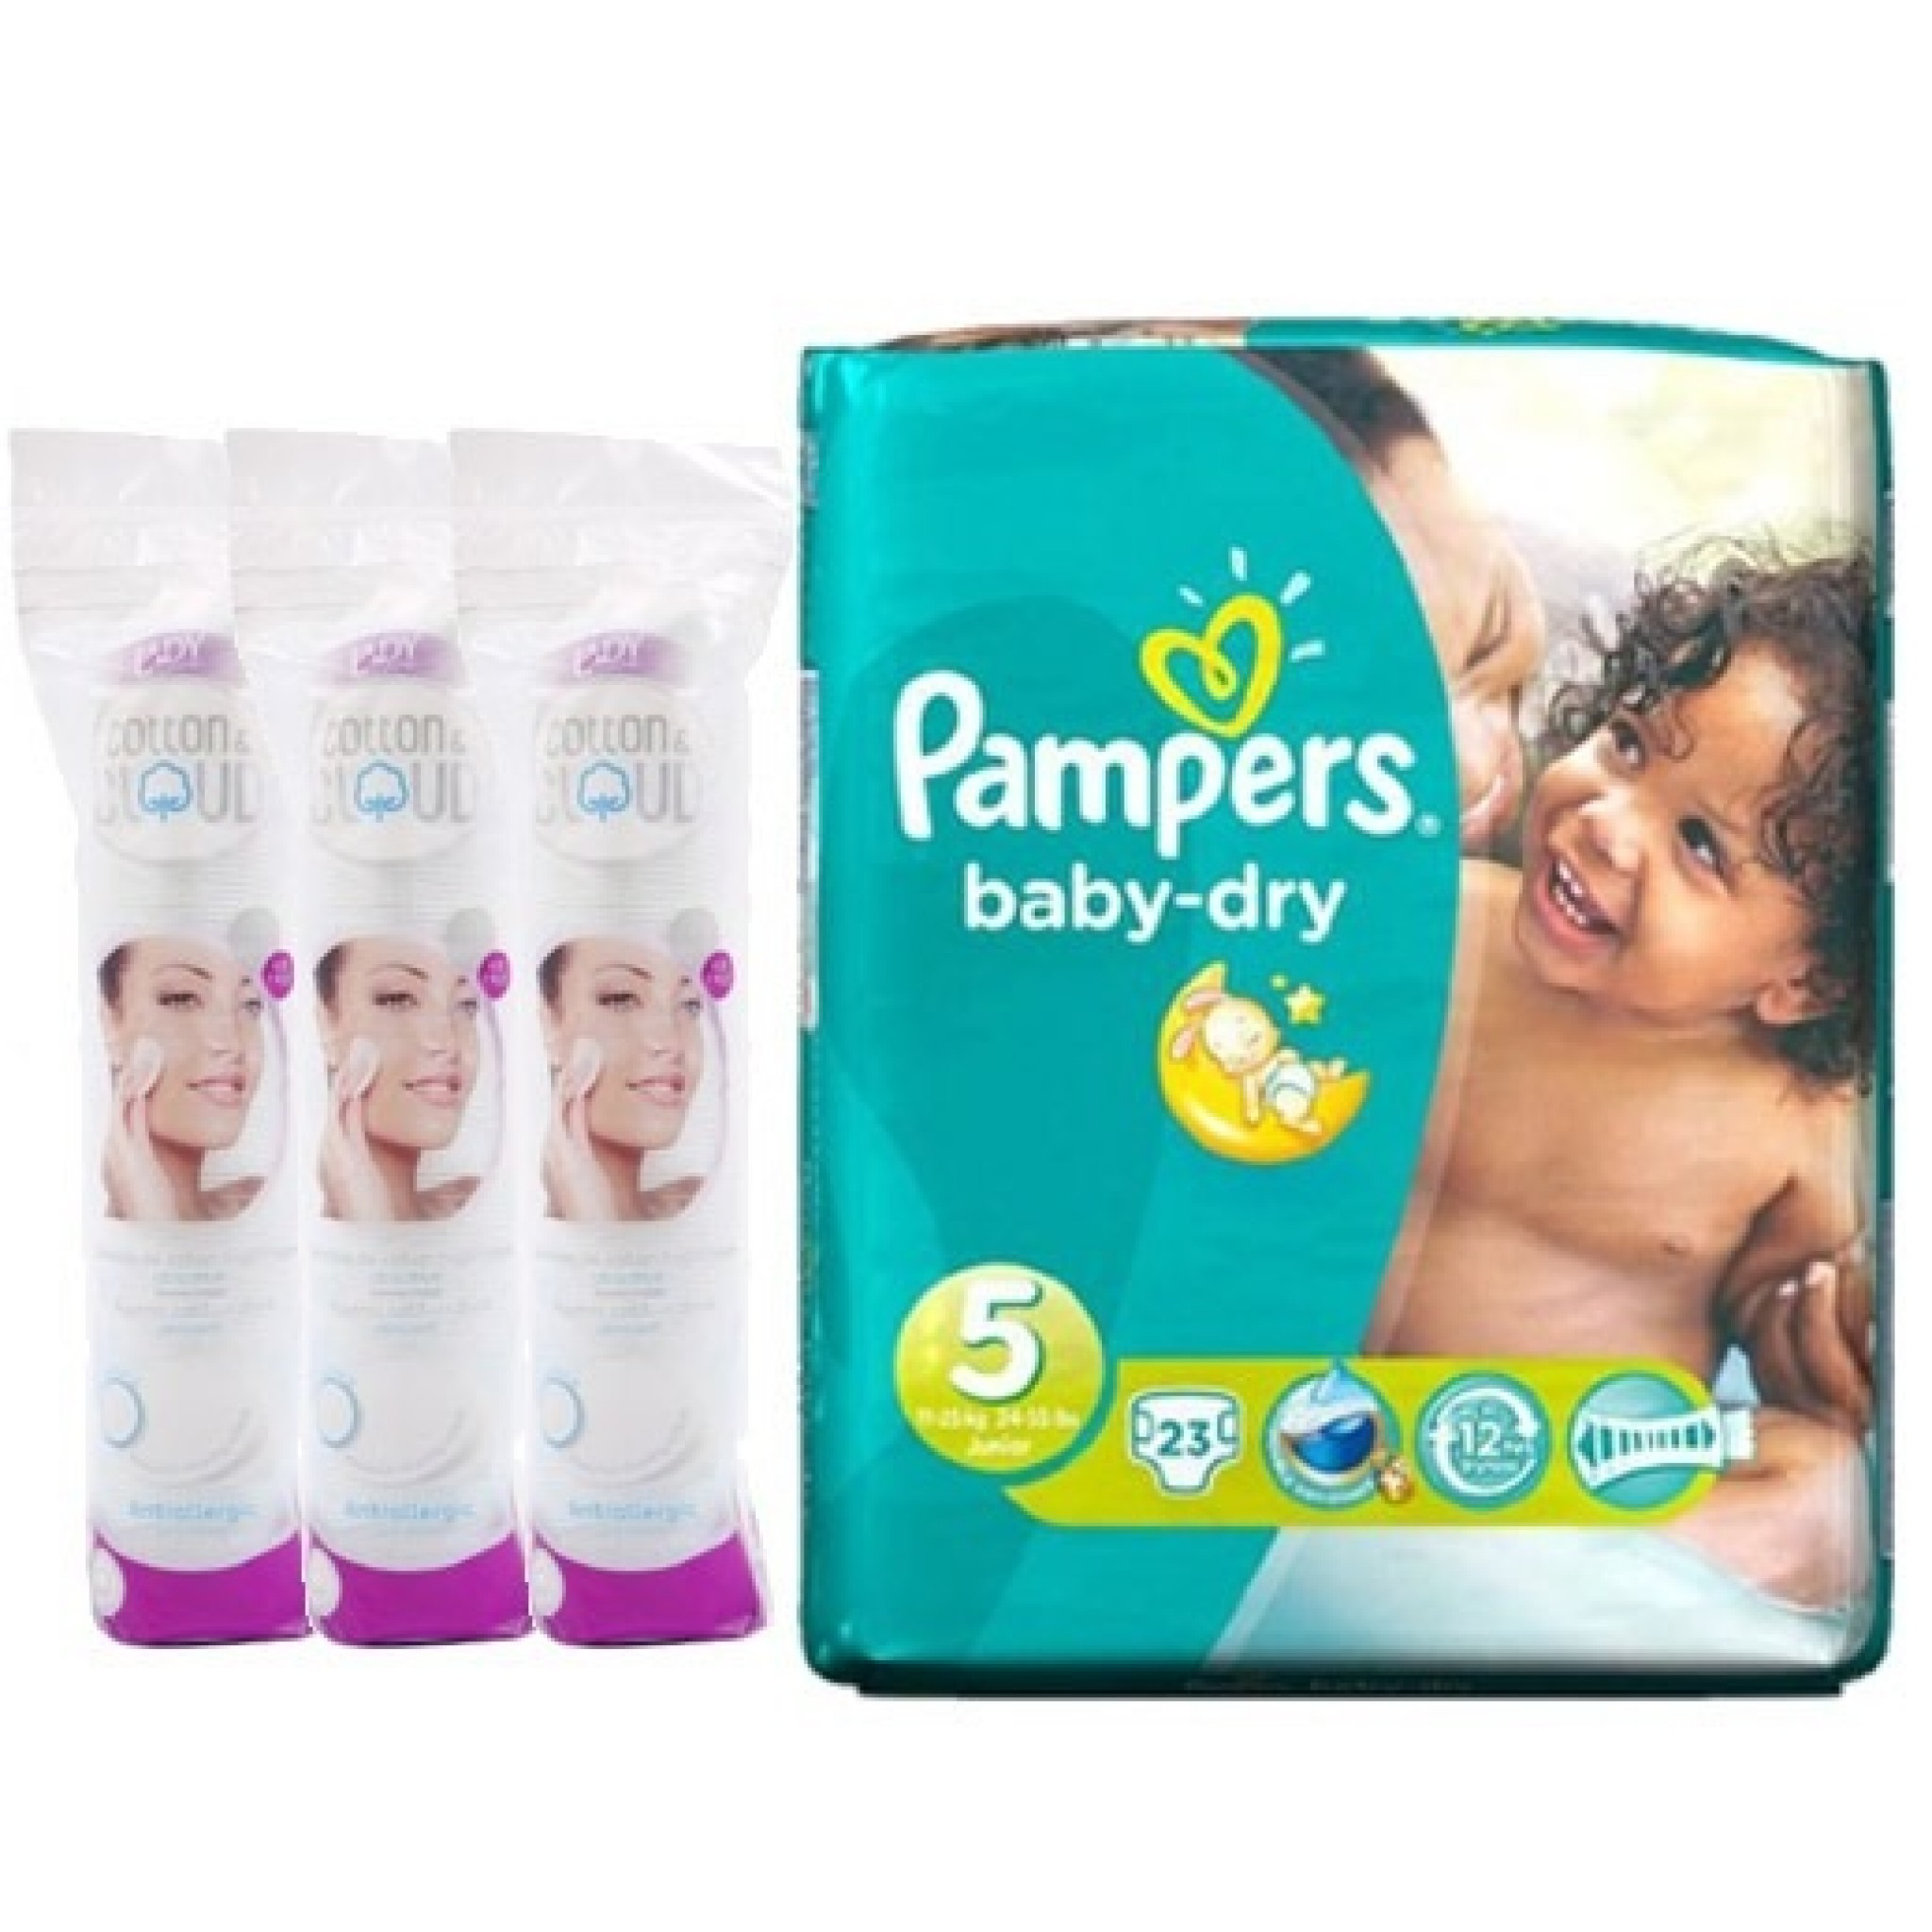 Pampers Baby-Dry 5 *23